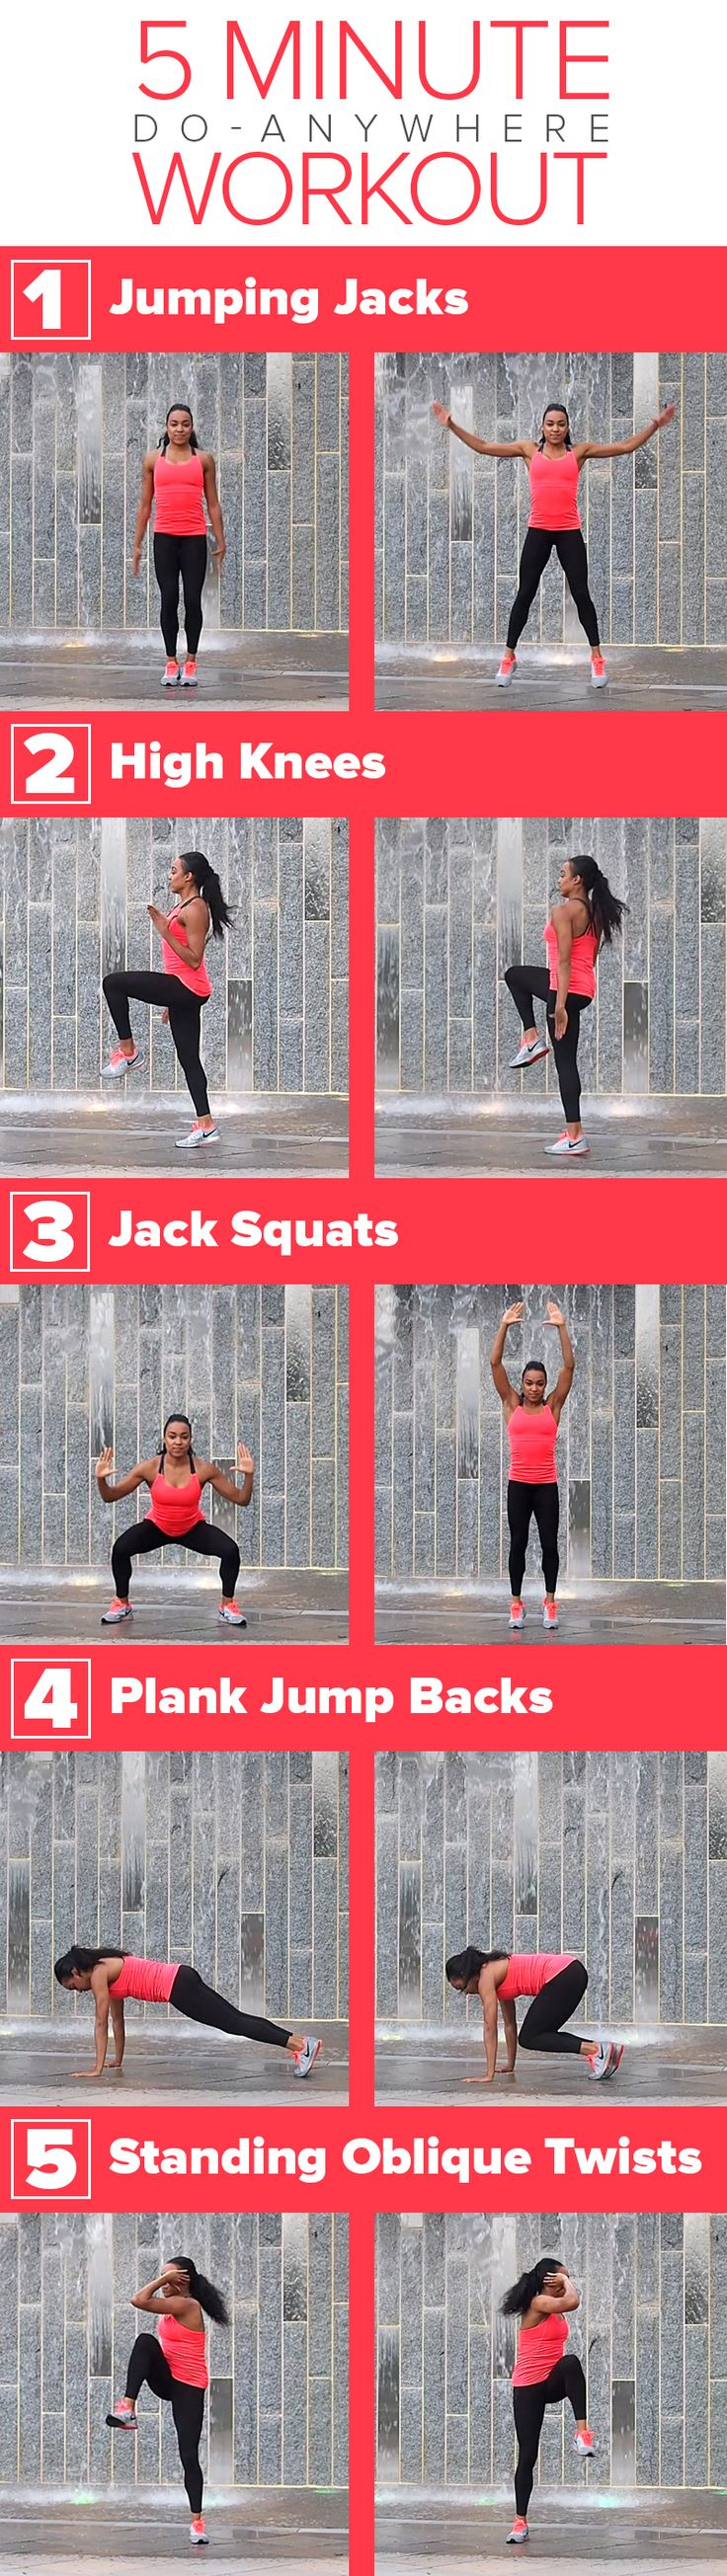 There's no equipment required for this 5-minute full body workout routine.